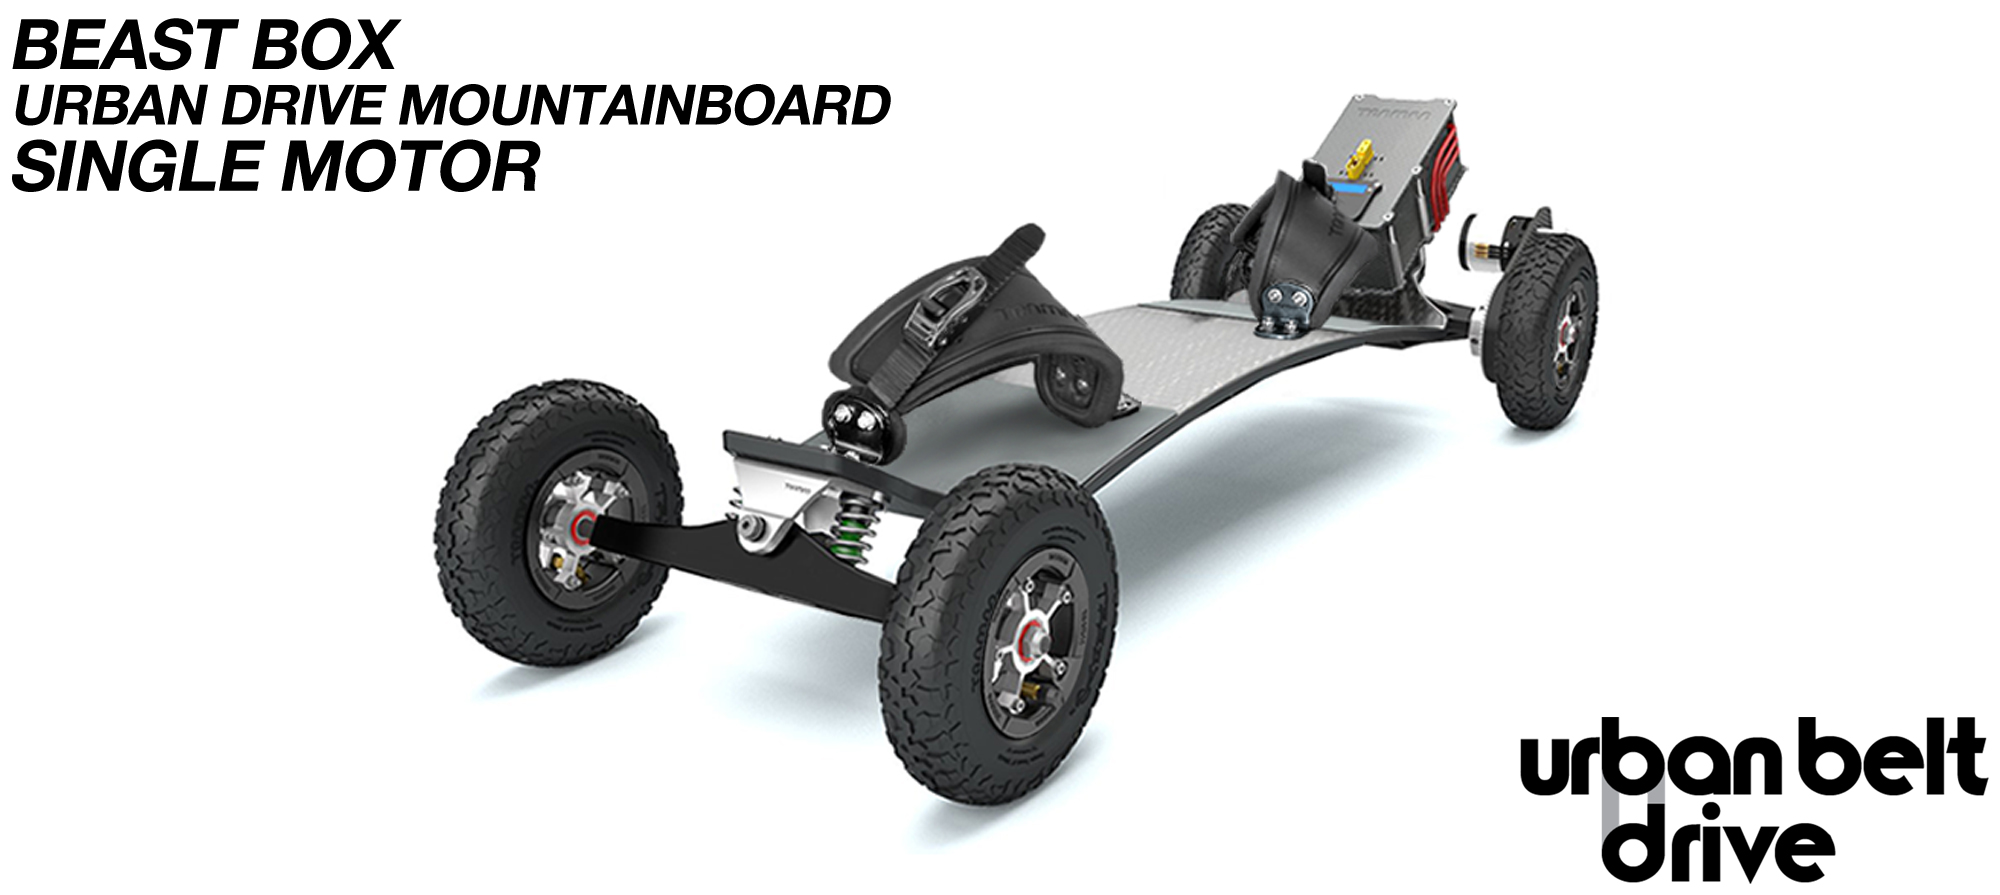 URBAN Electric Mountainboard - Urban Motor Mounts on Custom TRAMPA deck ATB Trucks 8 inch Wheels BEAST Box Single Motor with VESC